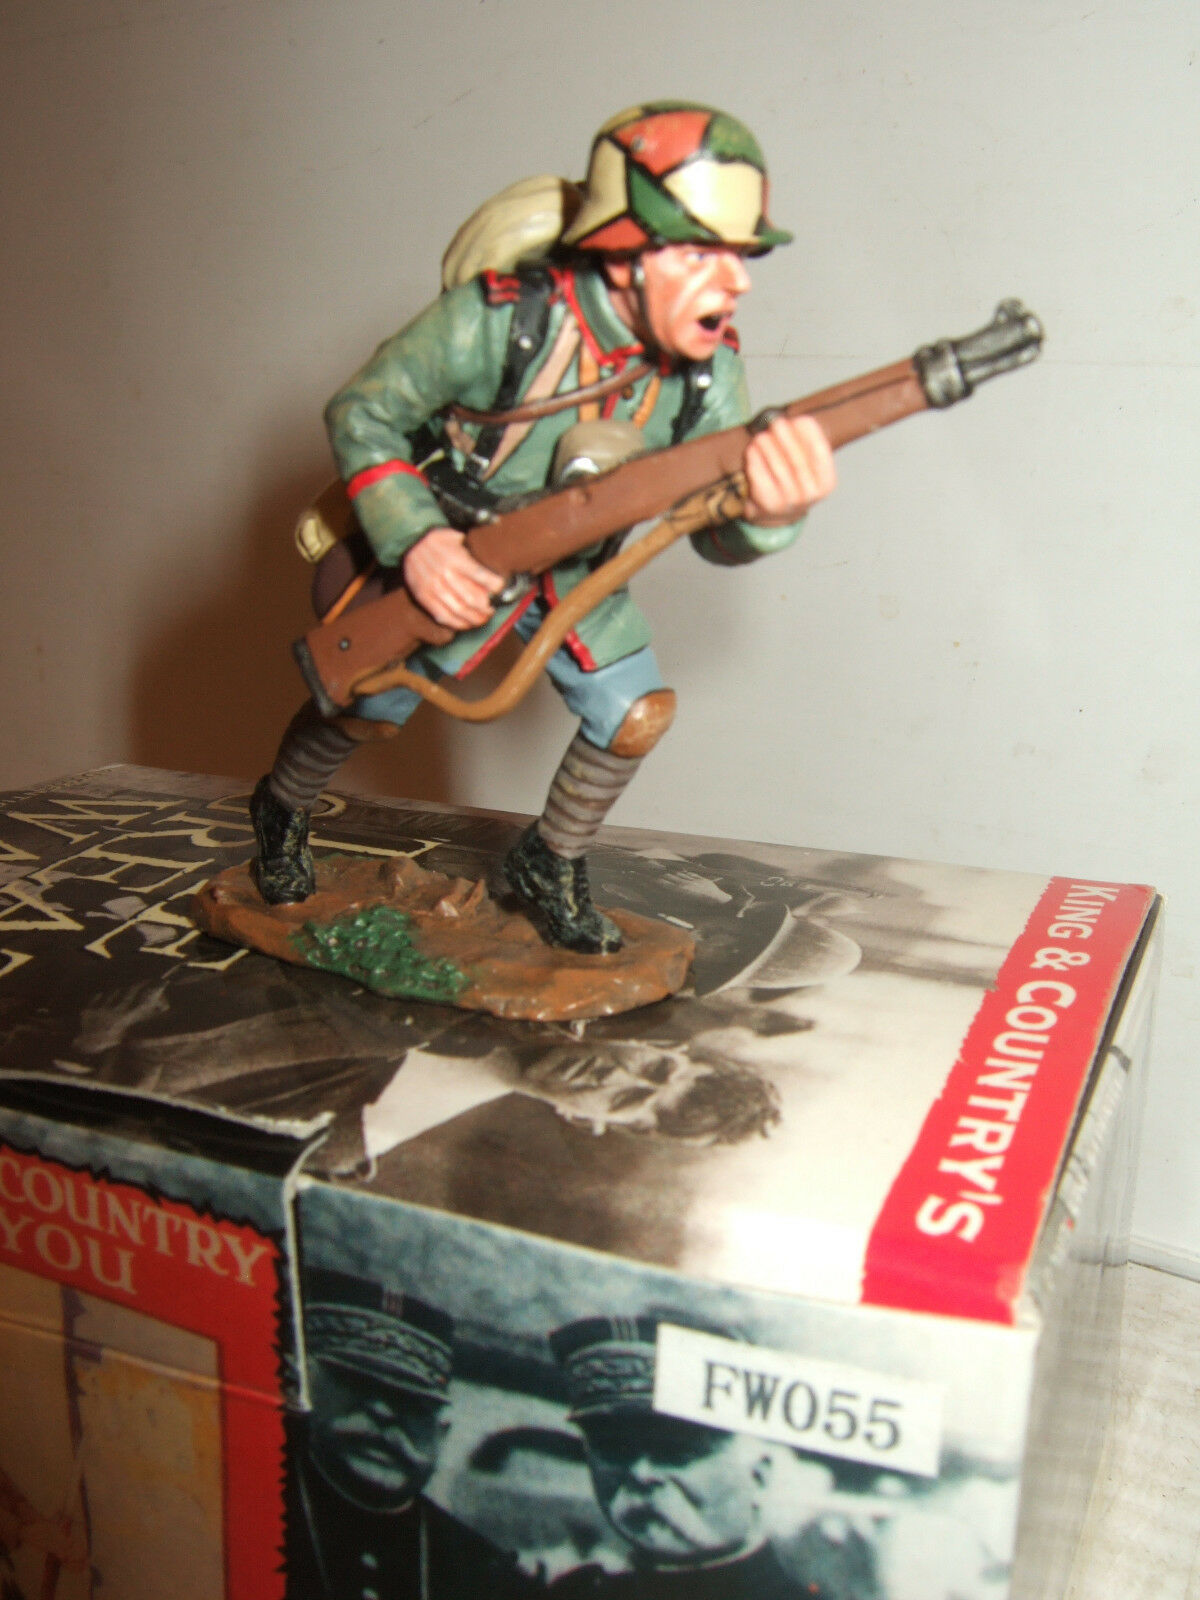 King and Country FW055 German Infantry soldier advances with Rifle  1 30 Scale